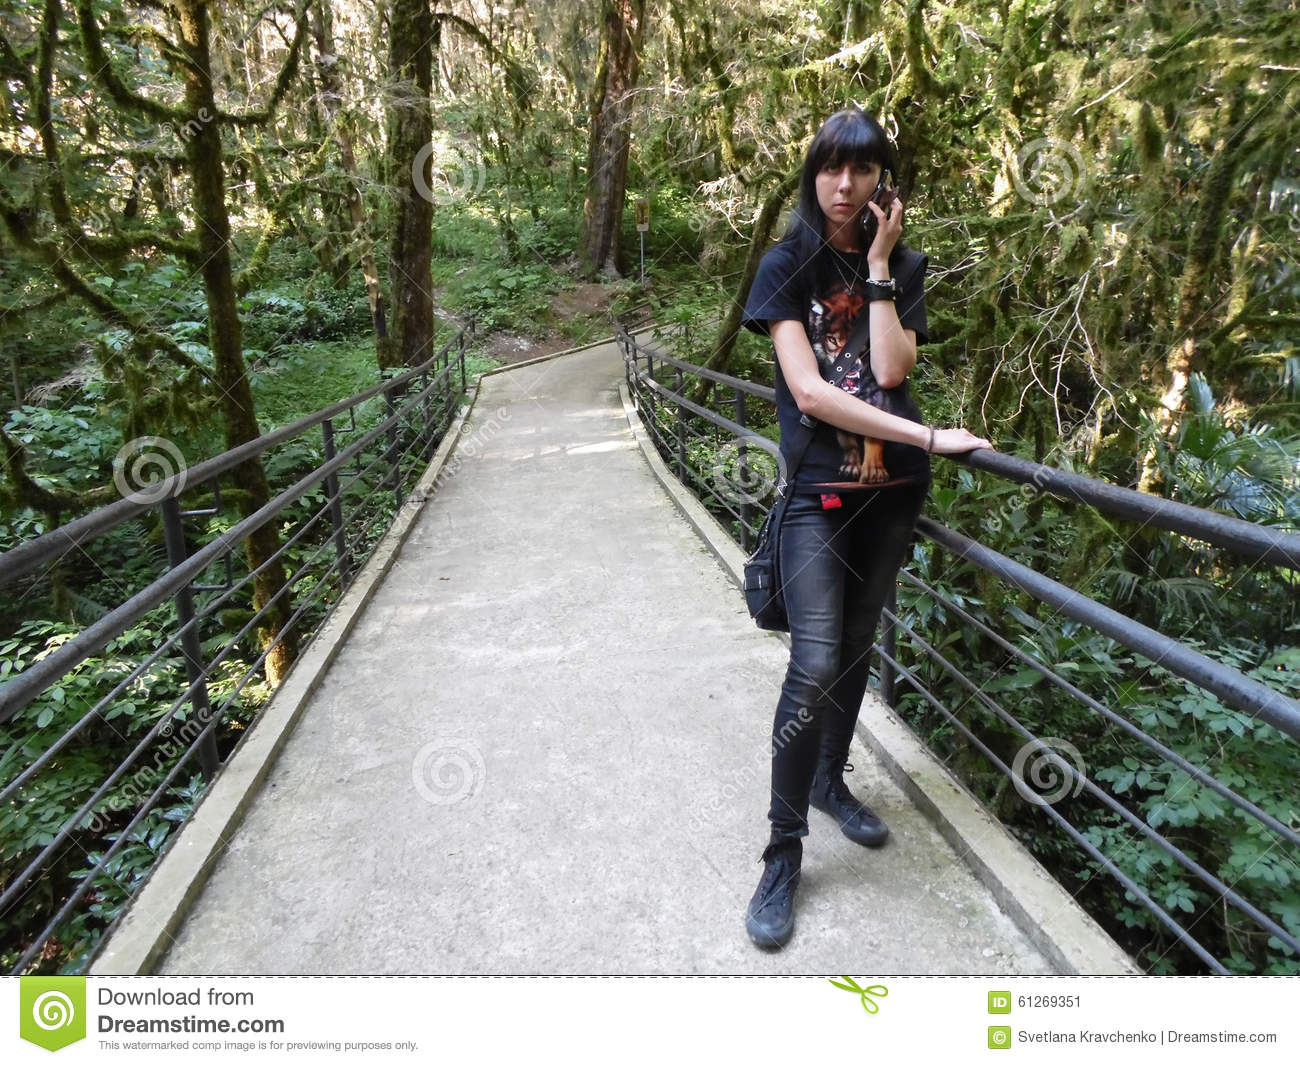 Download Girl With Phone Standing On The Bridge In The Relict Grove Stock Image - Image of nature, standing: 61269351